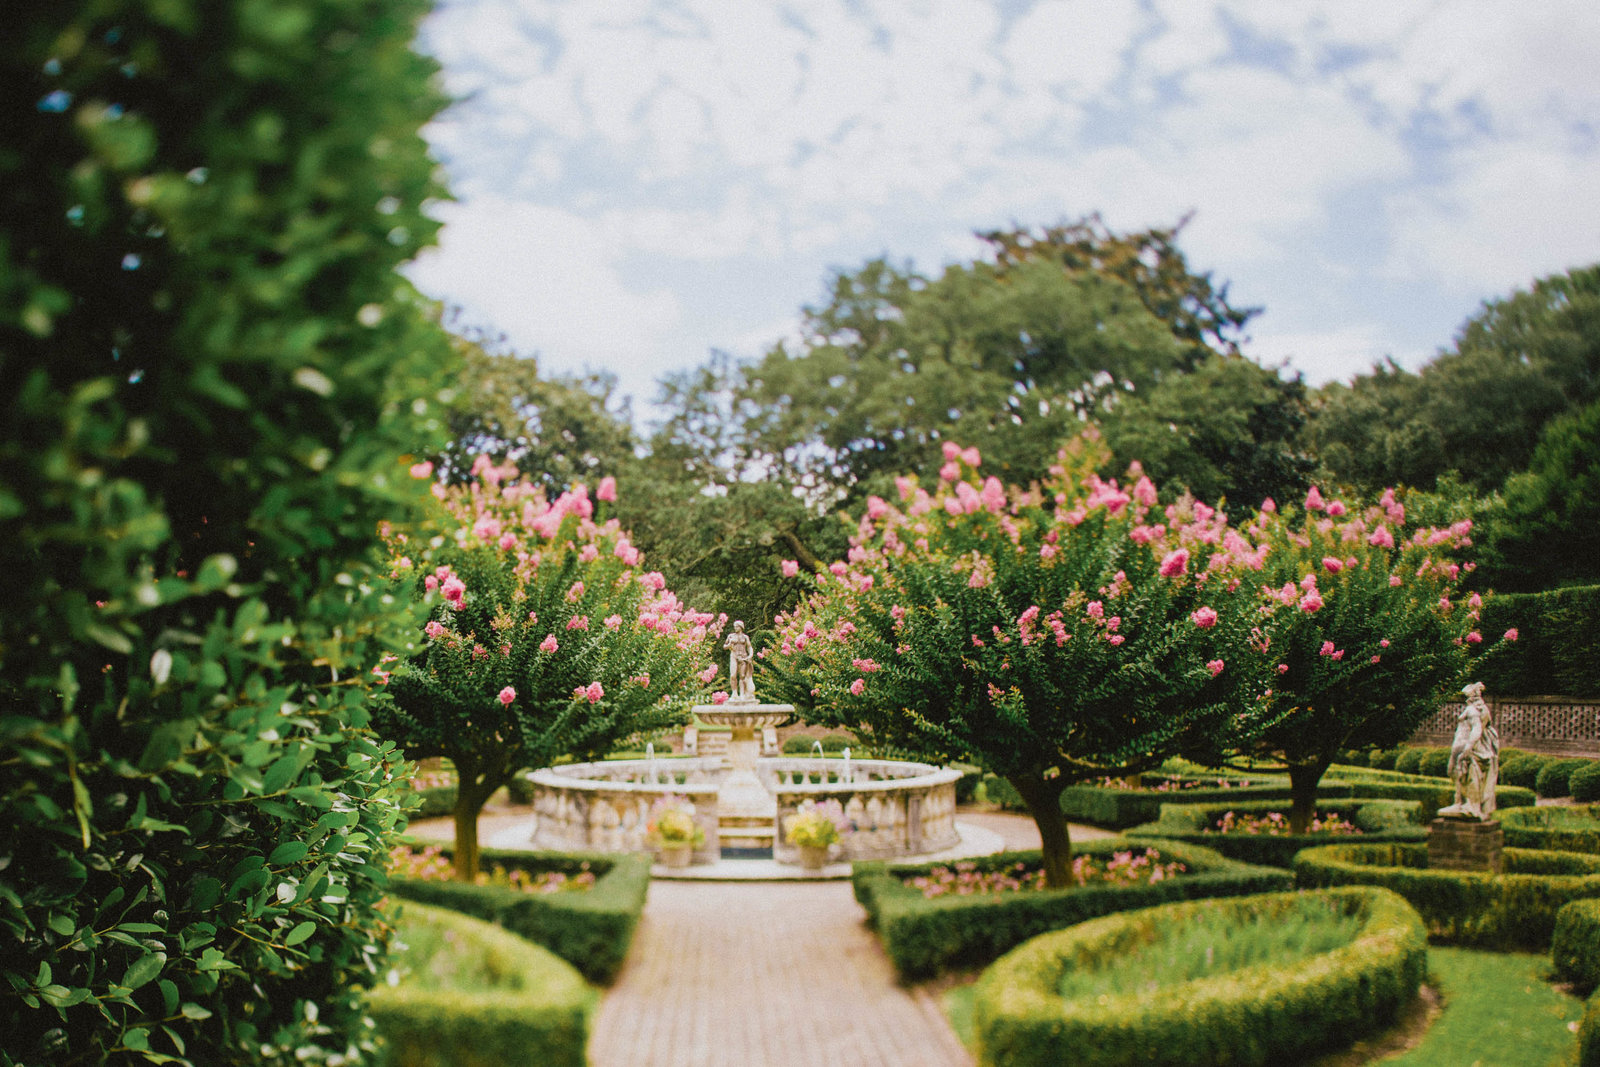 statue-manicured-elizabethan-gardens-nature-outer-banks-nc-kate-timbers-photography-1608